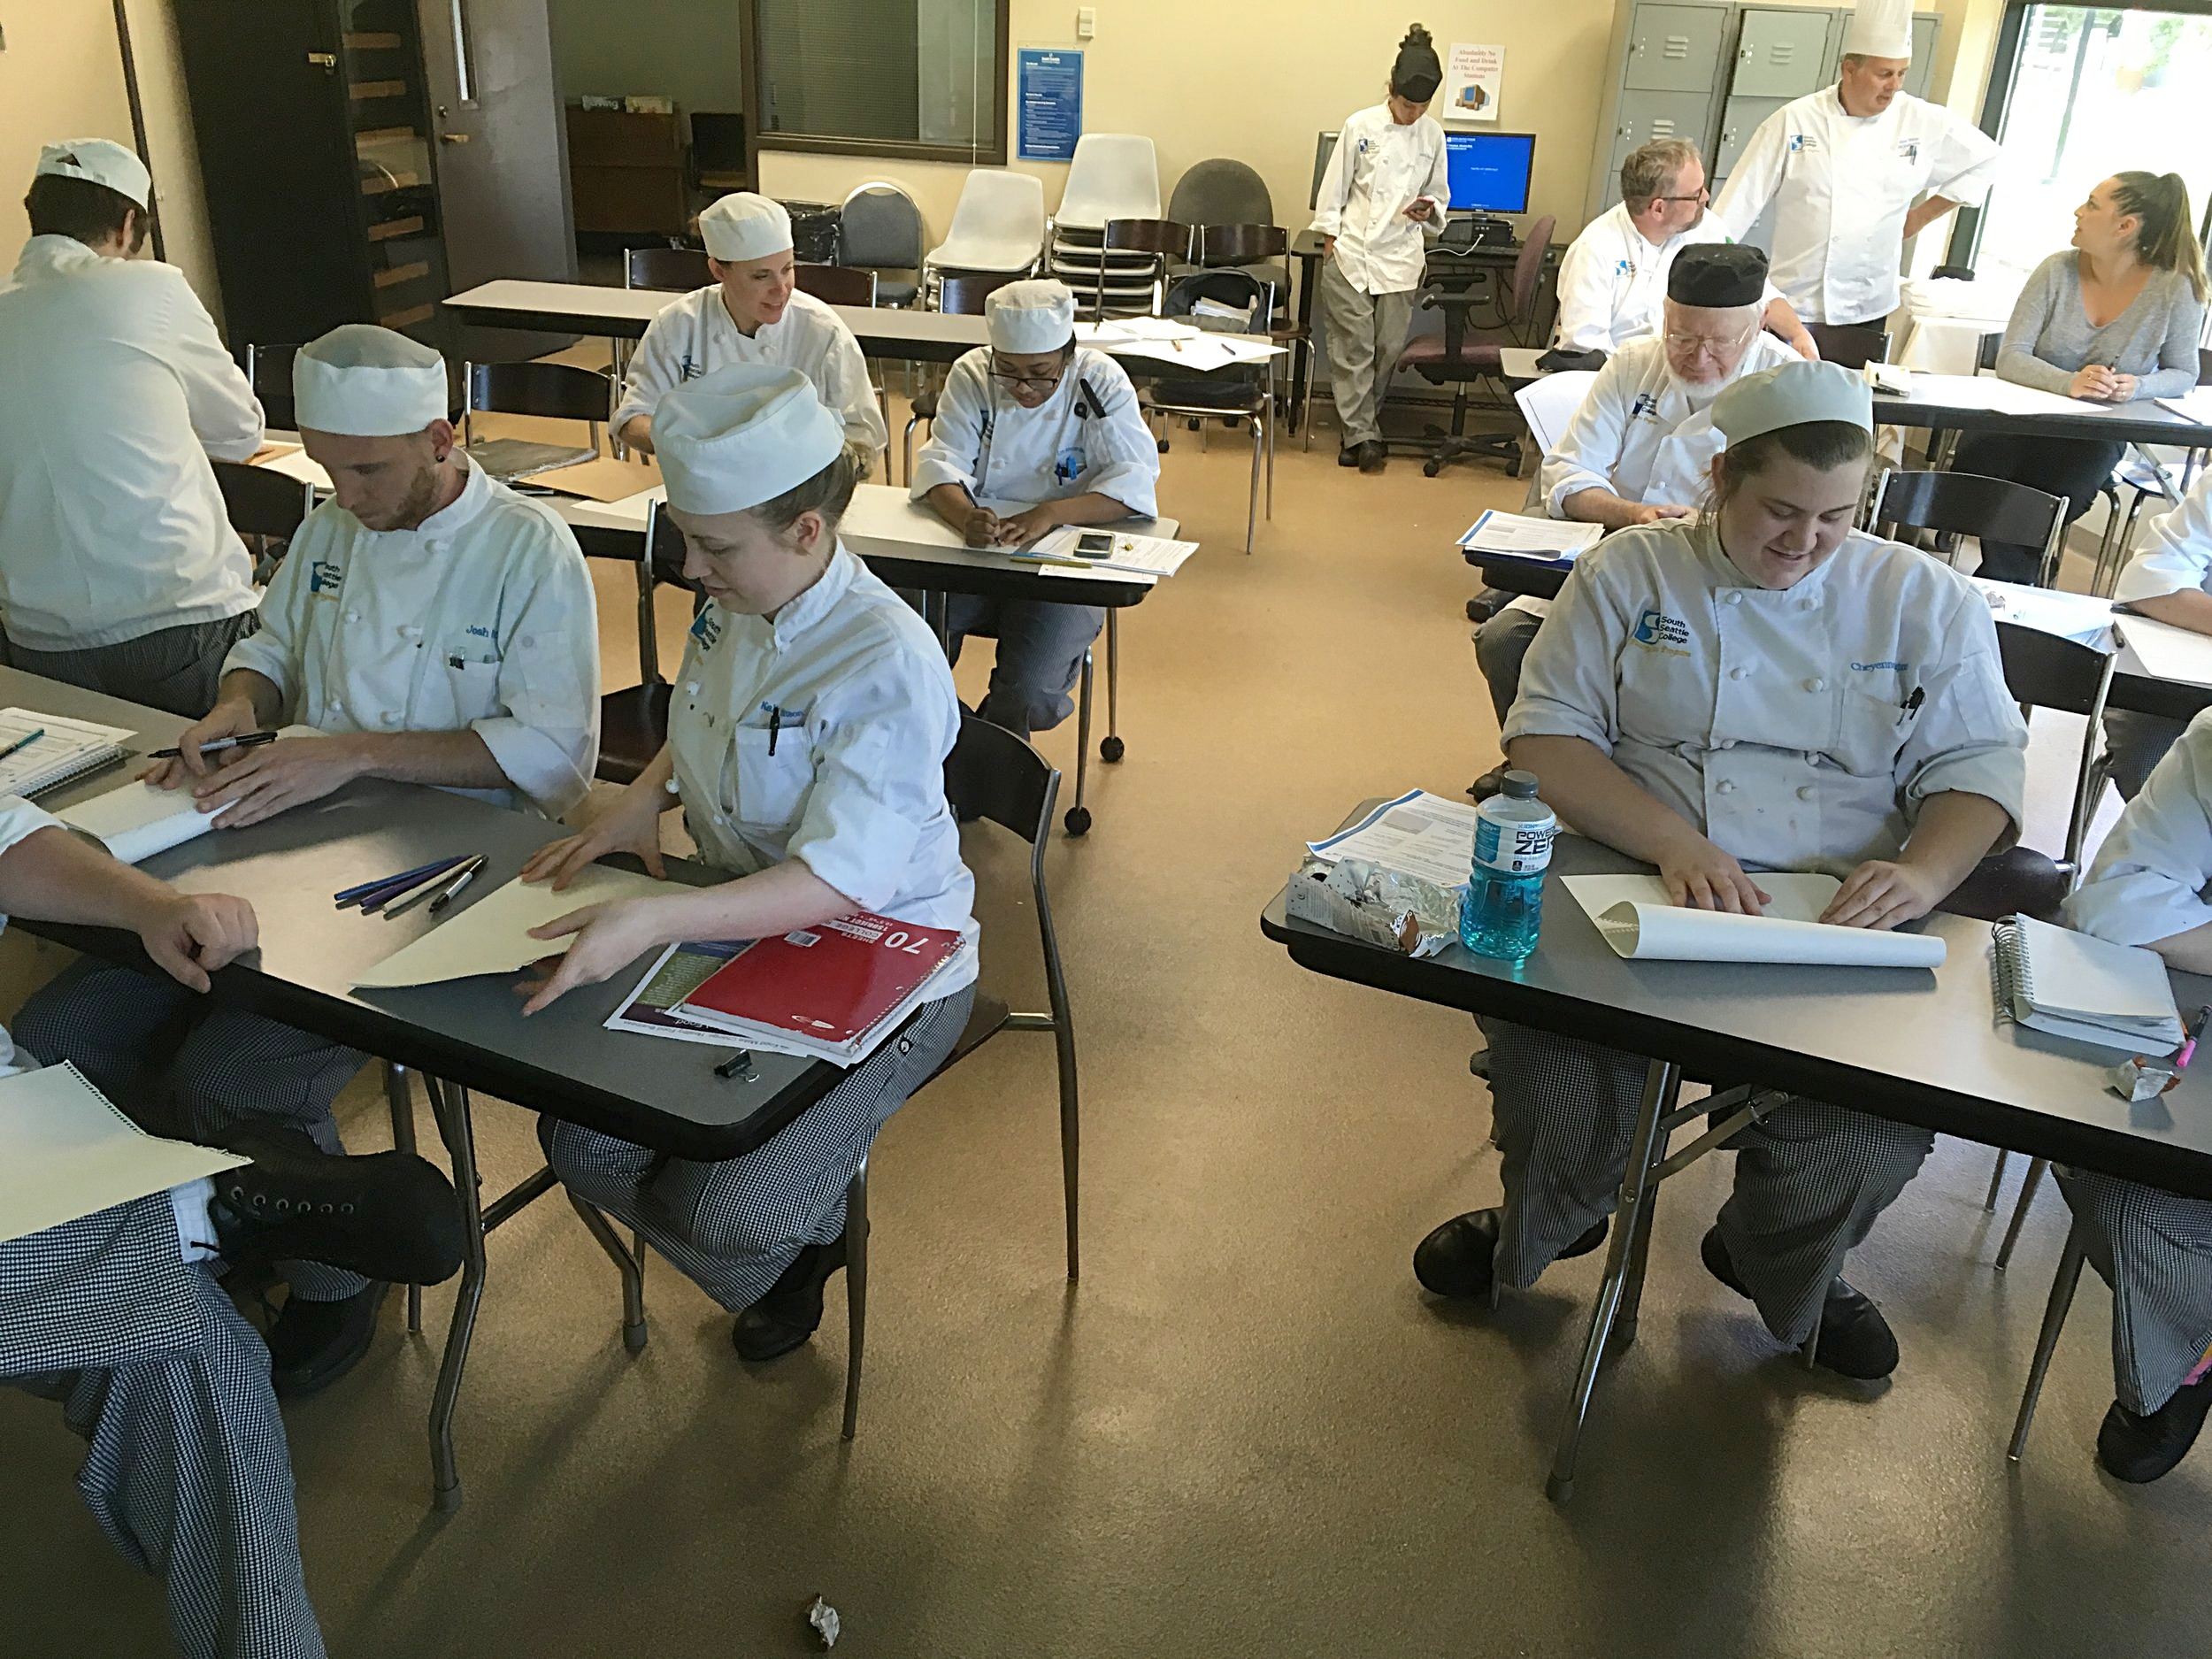 Workshops happen in King, Snohomish, and Pierce County, either independently or embedded in other programs, such as this series that was part of a culinary arts class at South Seattle College.